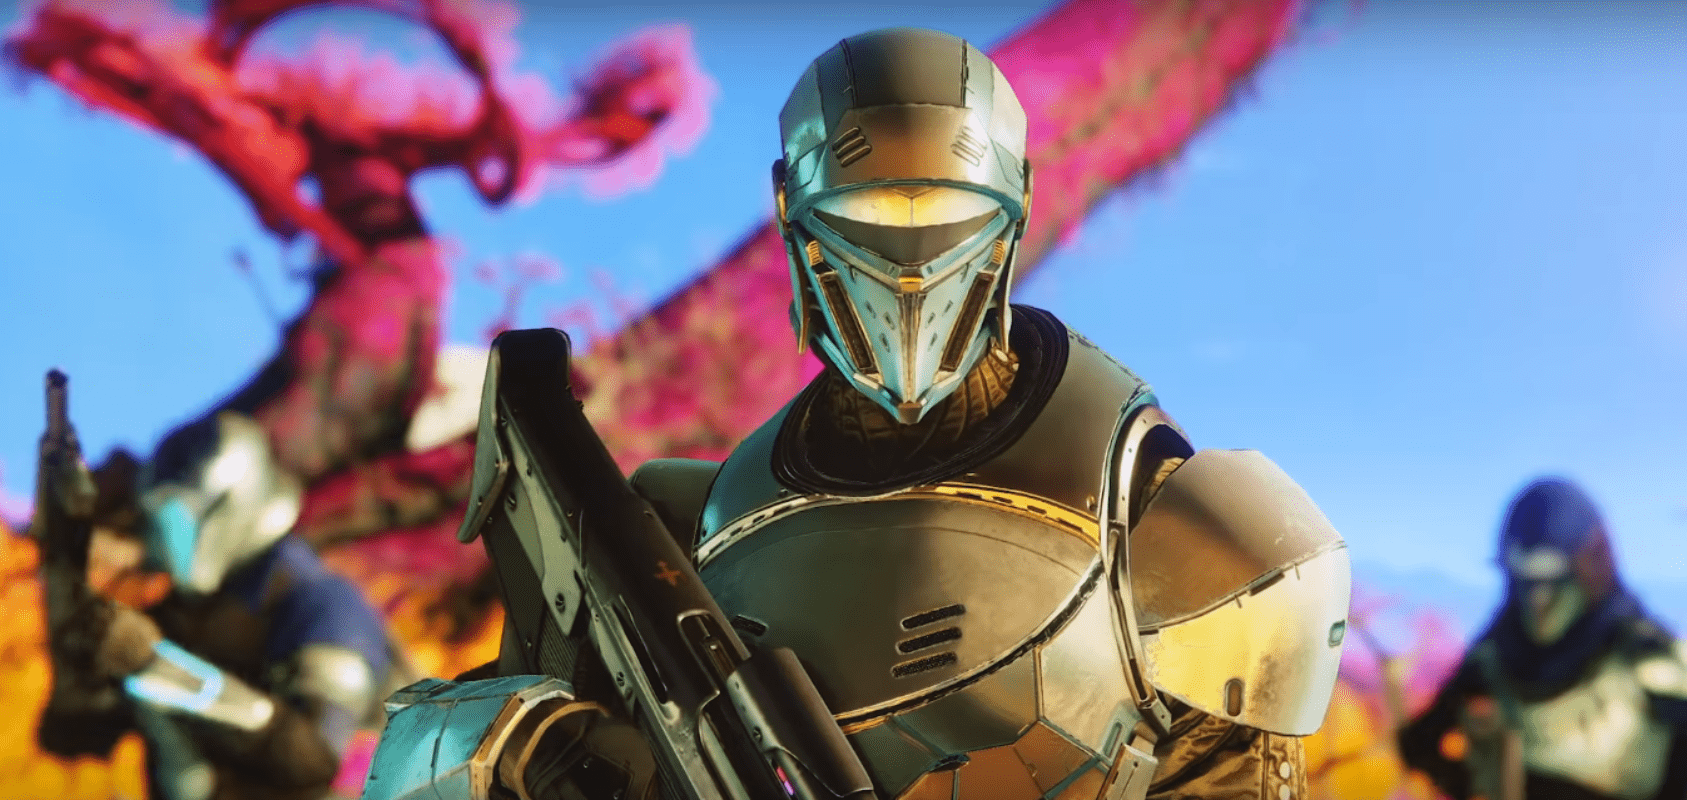 As Guardian Games Approaches, Bungie Discusses Destiny 2's Class Population Differences And Upcoming Festivities